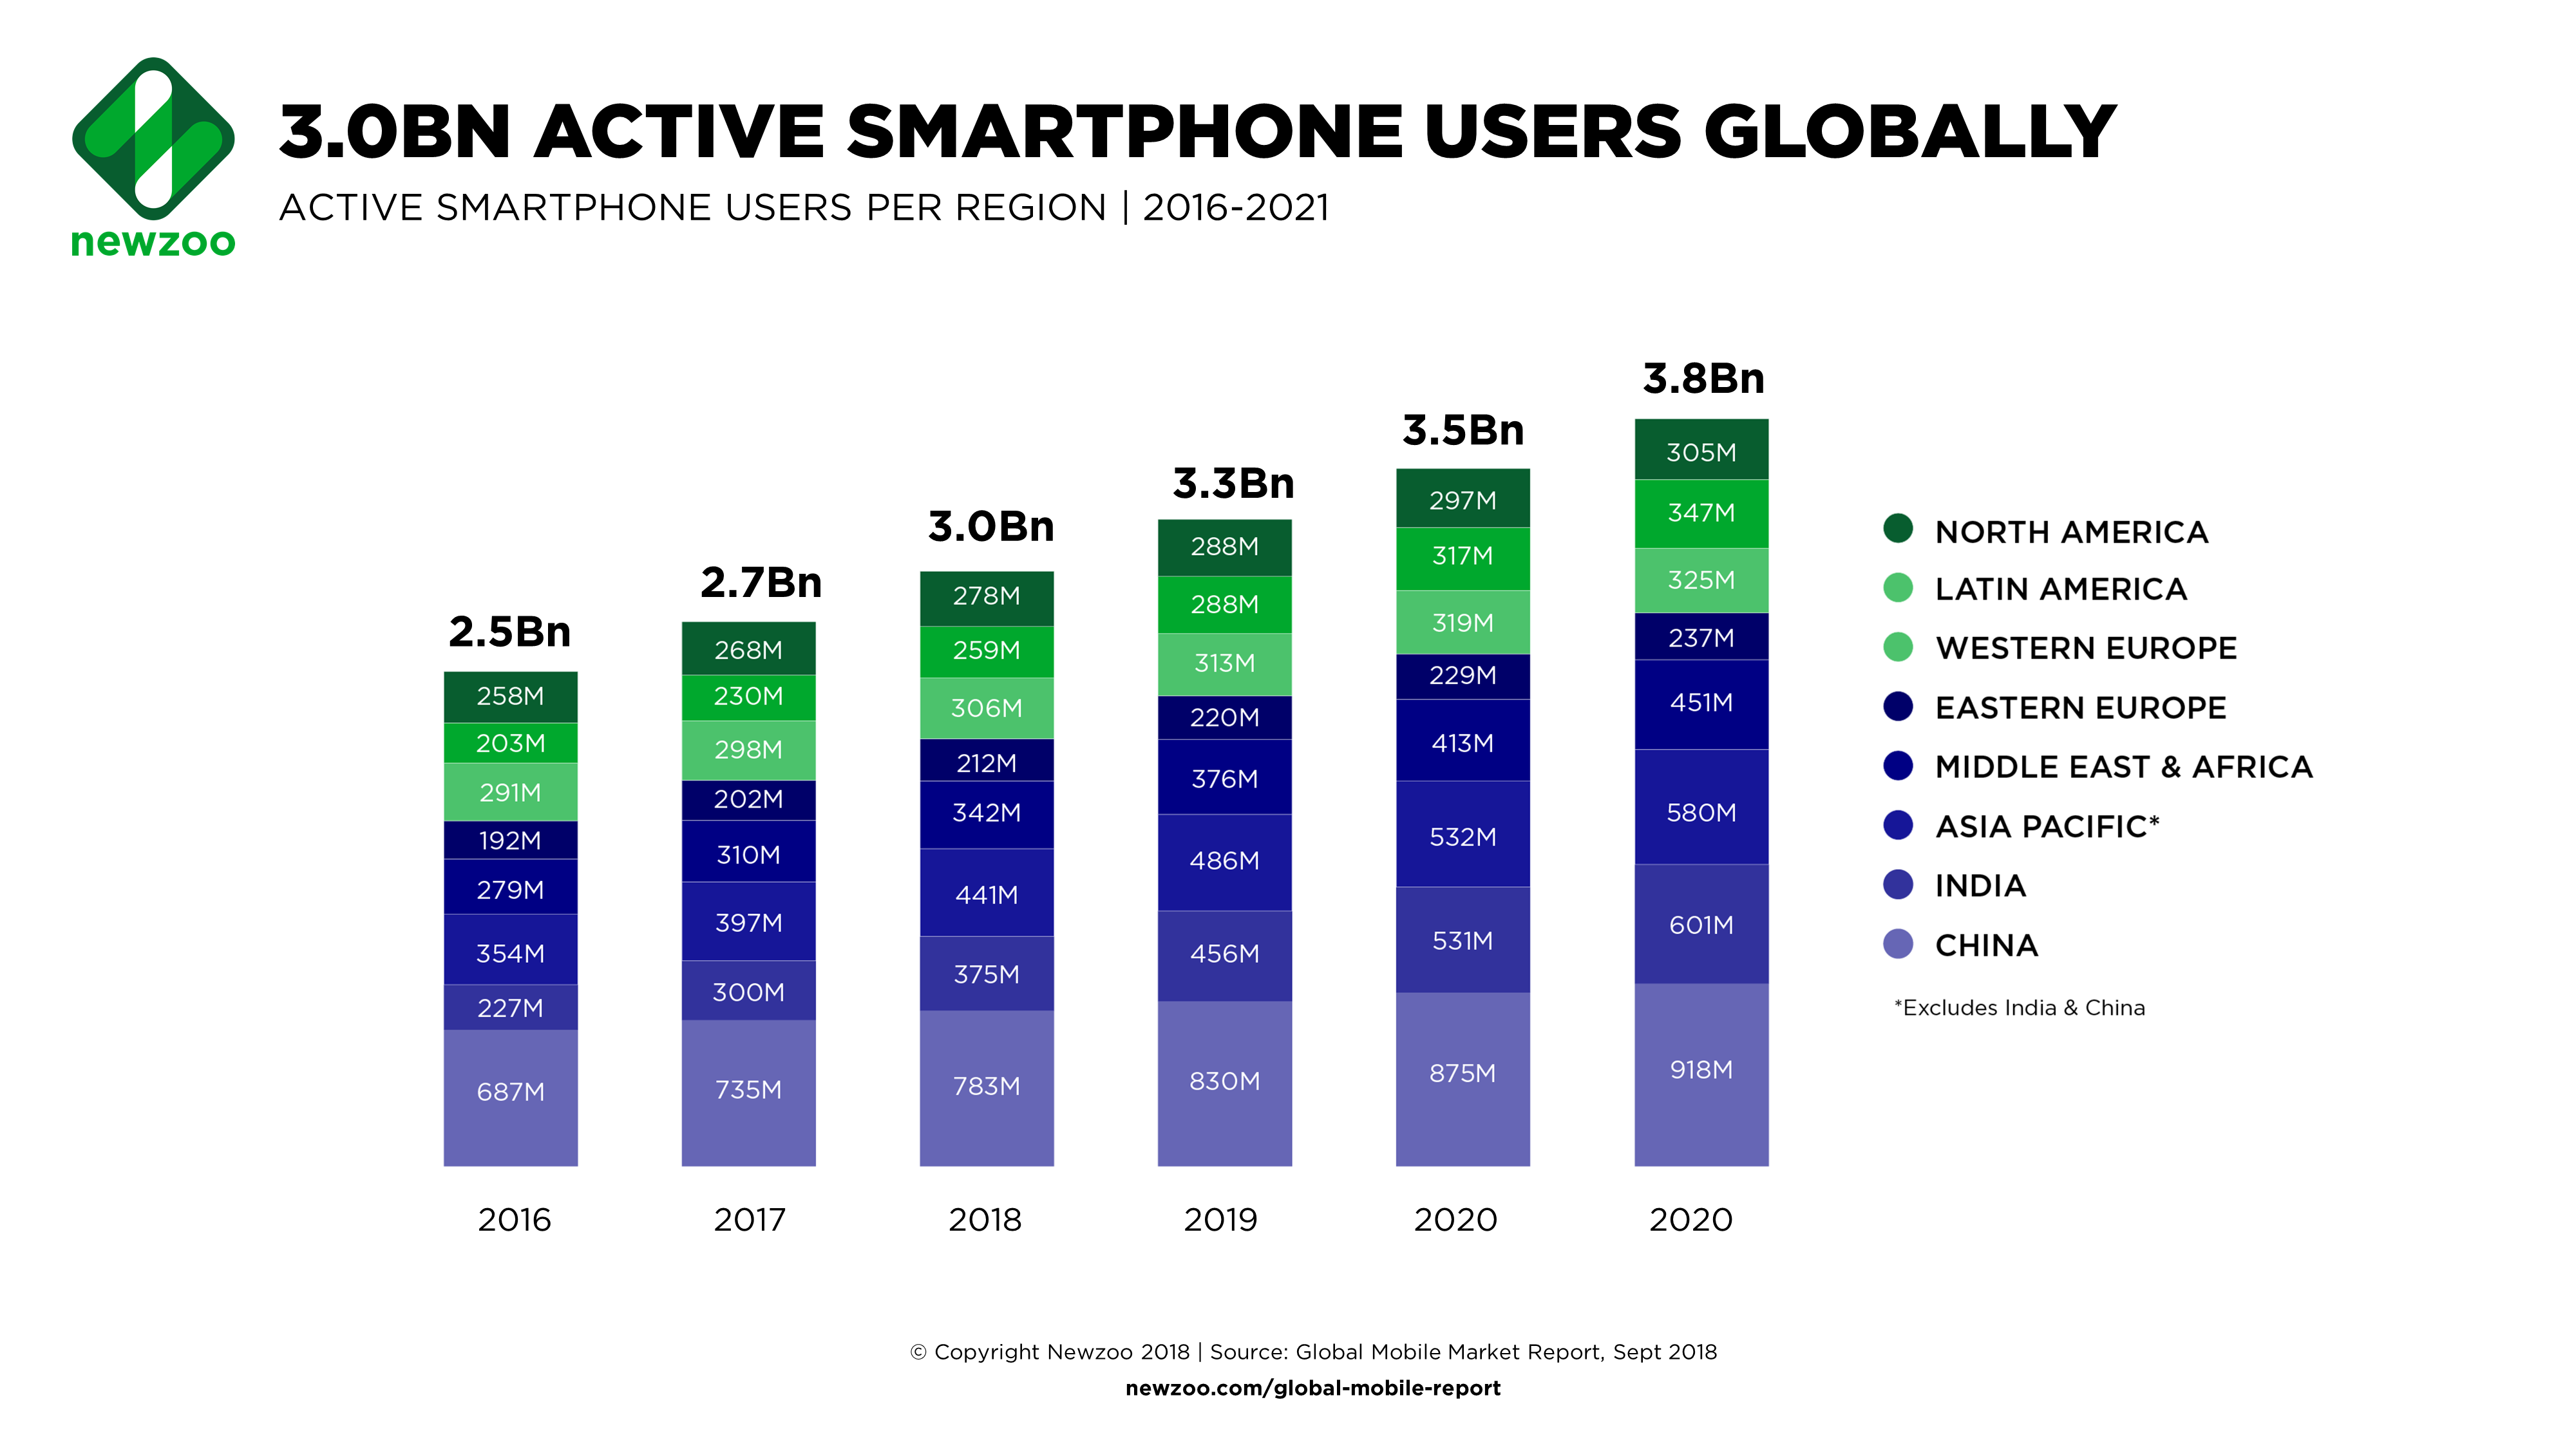 Games expected to account for 76% of global mobile revenue